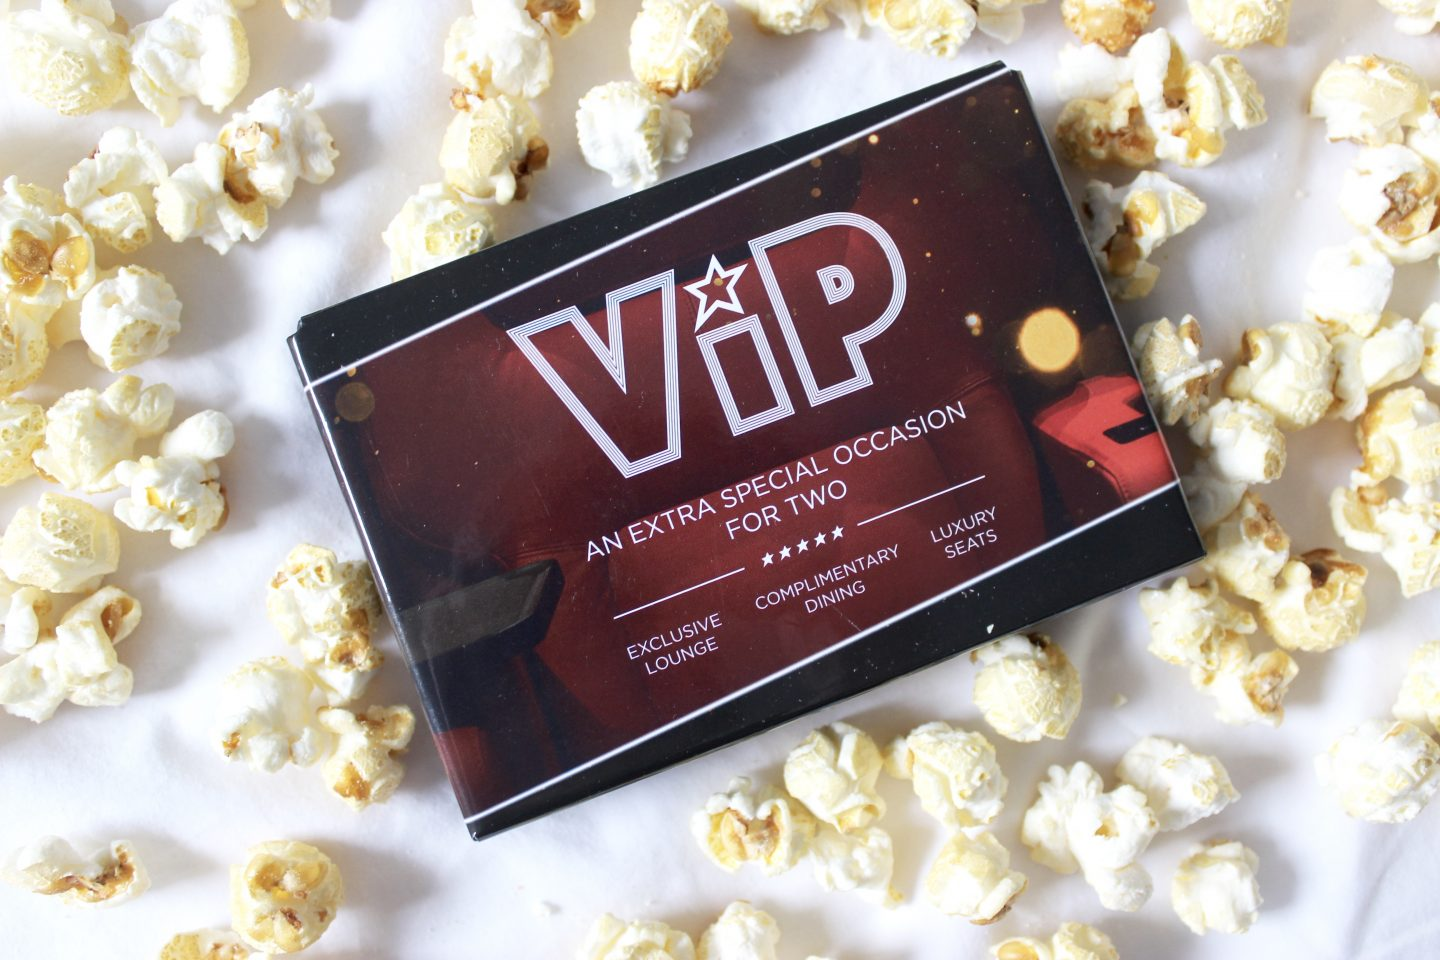 GIVE MUM THE VIP TREATMENT THIS MOTHER'S DAY WITH CINEWORLD VIP